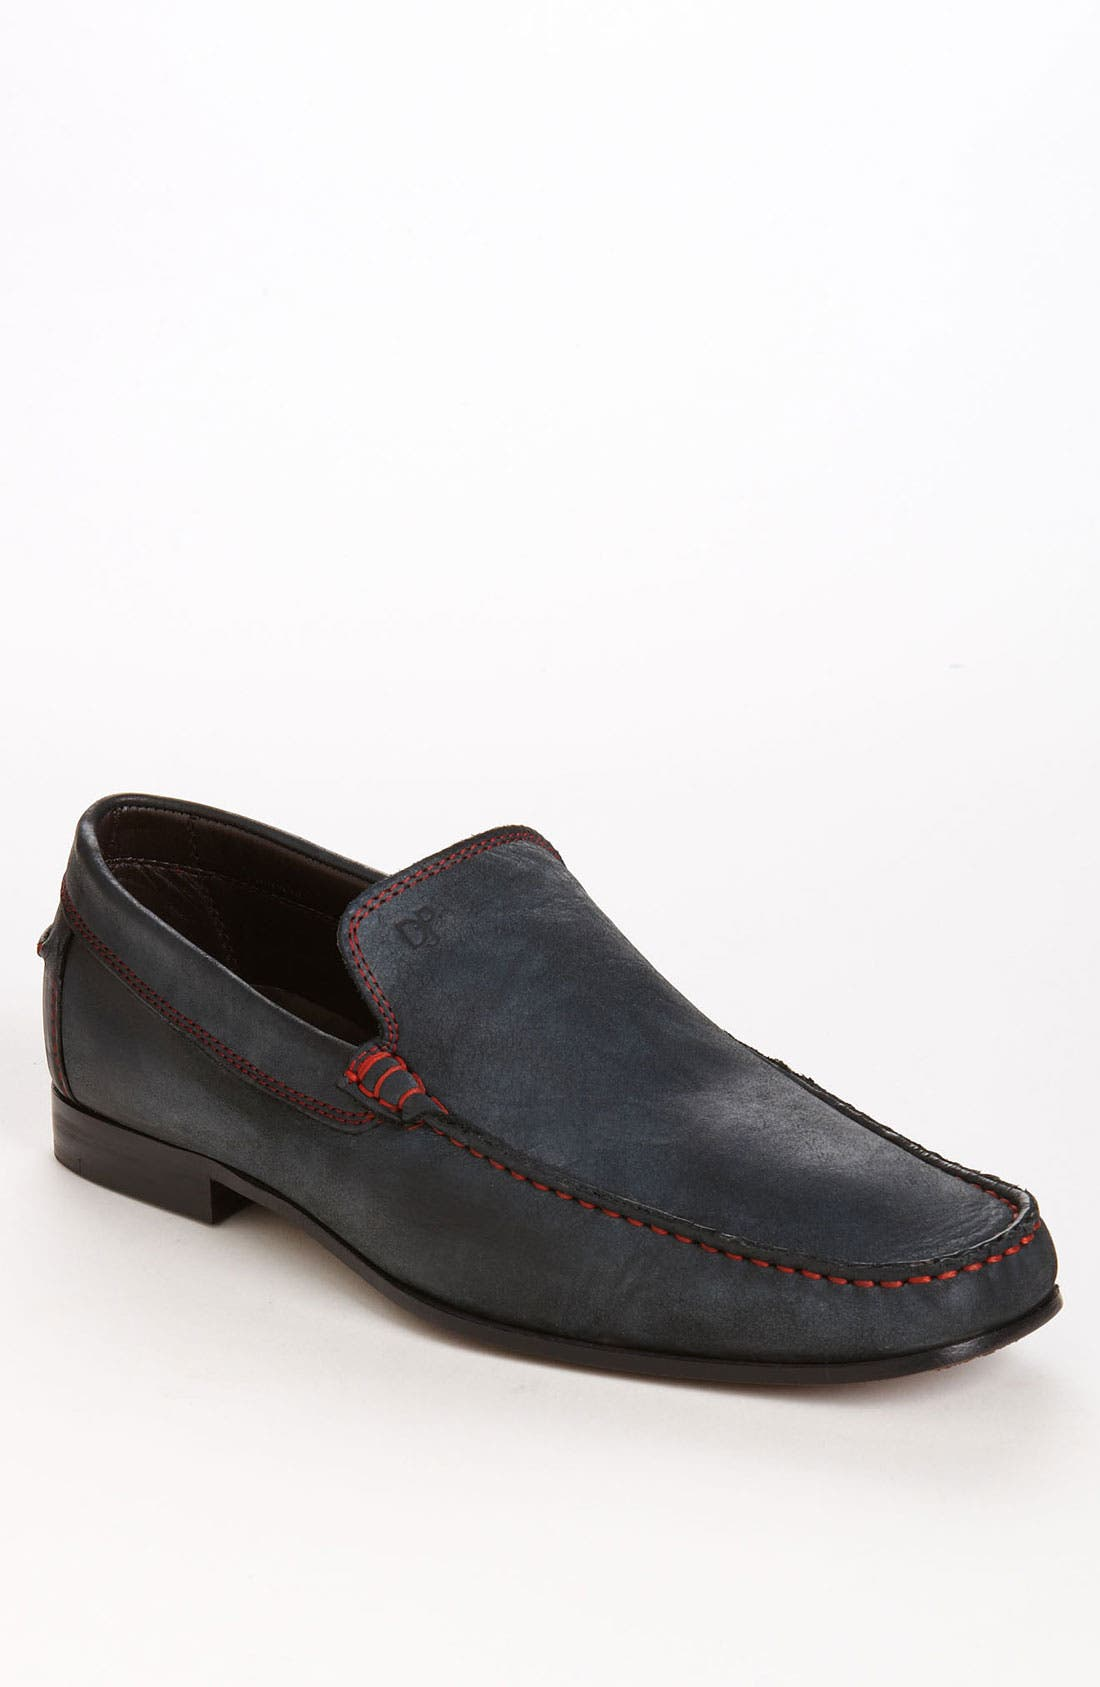 Alternate Image 1 Selected - Donald J Pliner 'Daryl' Loafer (Online Only)